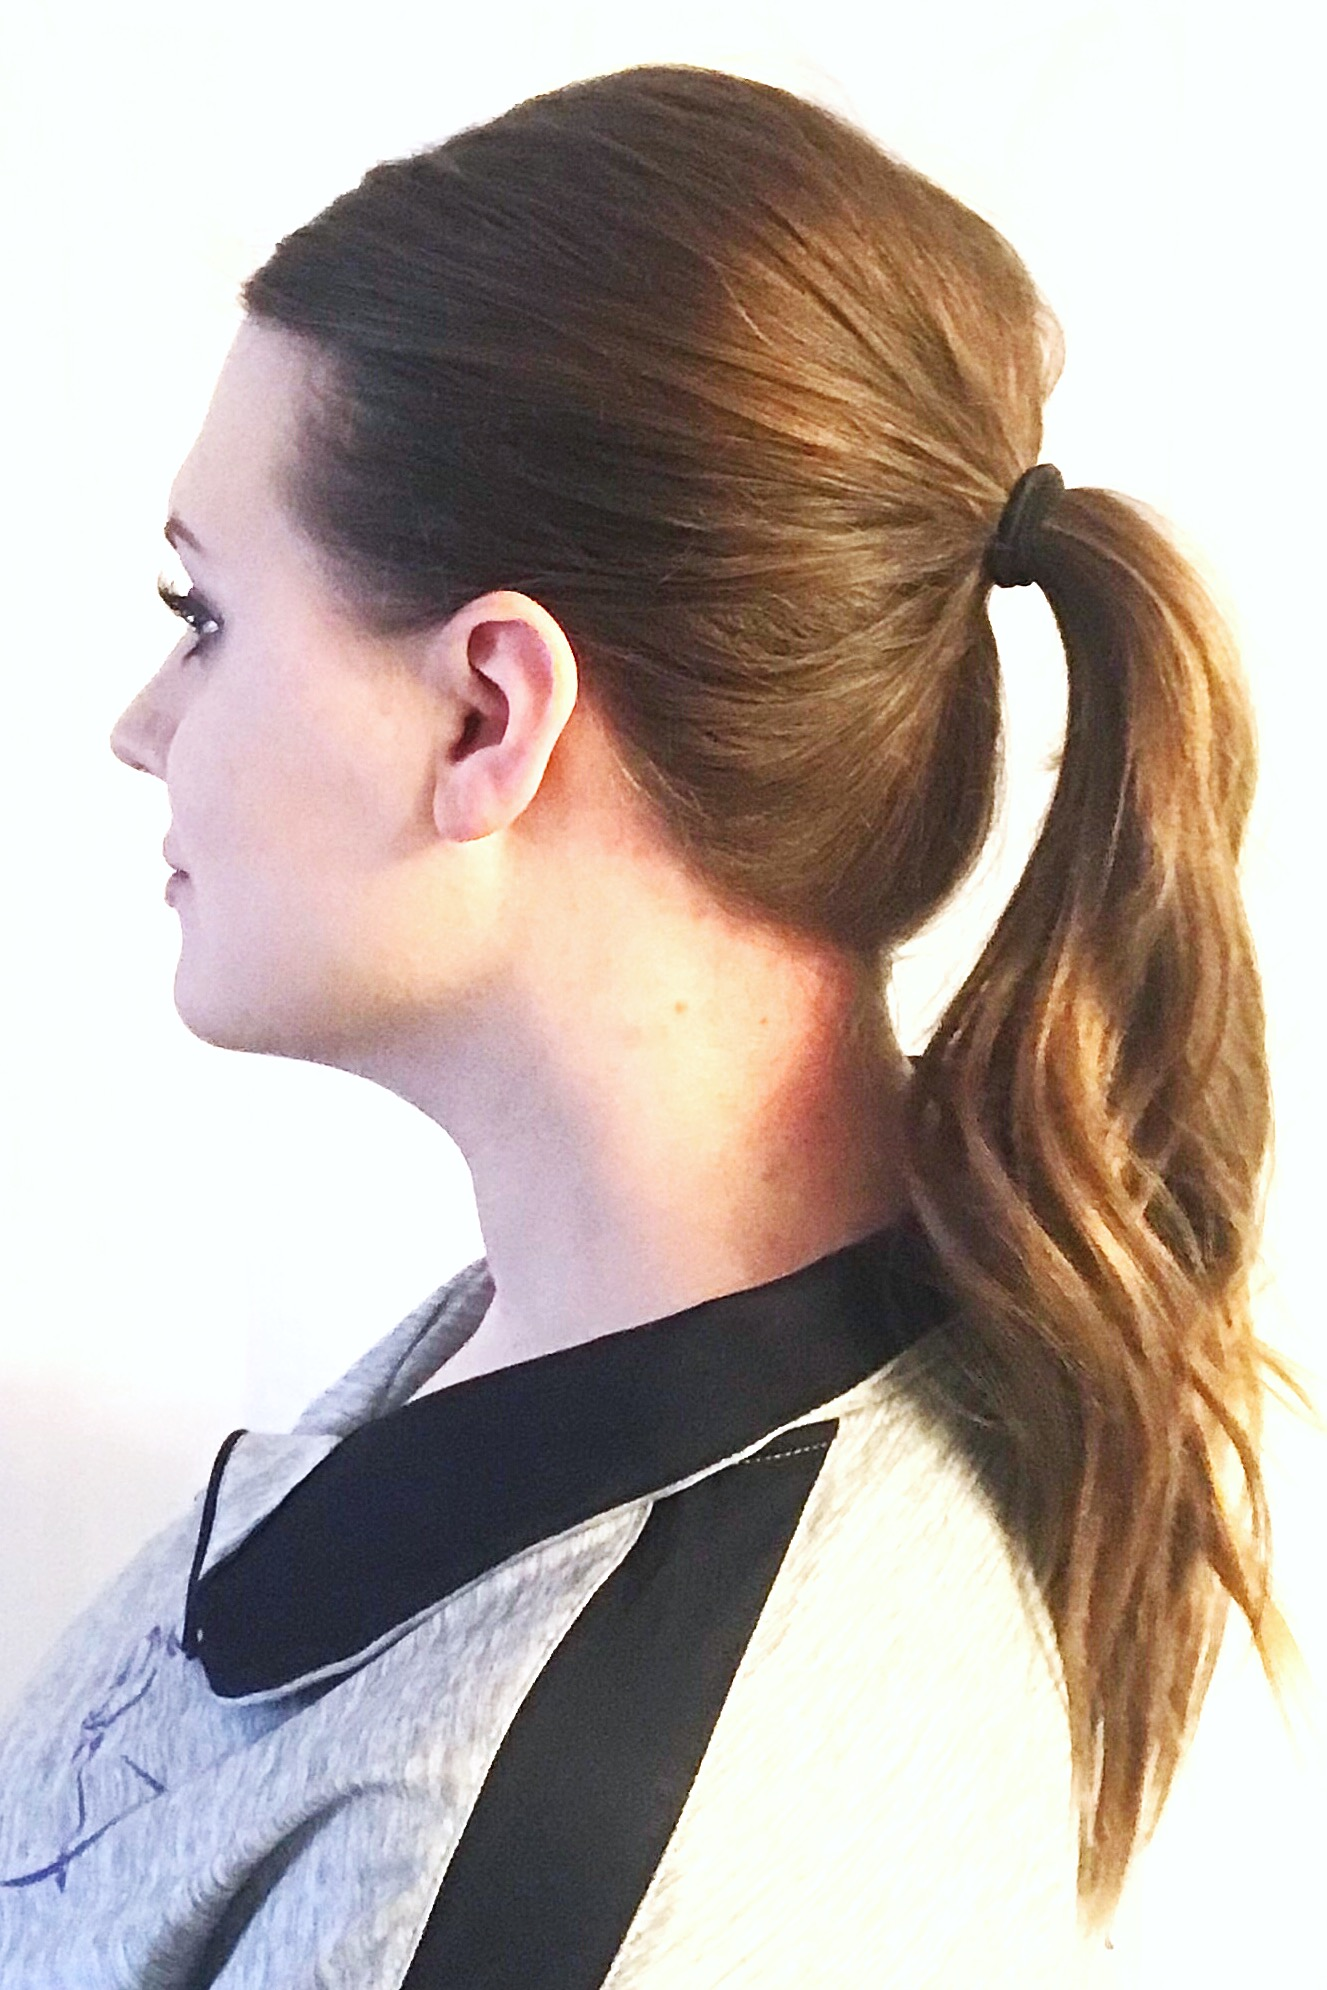 Next I put my hair into a mid-level ponytail. I like this style because I can usually put a ball cap on over it and don't have to adjust my ponytail height to fit through the hole. As you can see, the teasing added some nice volume on top. I keep my ponytails pretty tight as I find this helps keep the volume on the top of my head throughout the day.